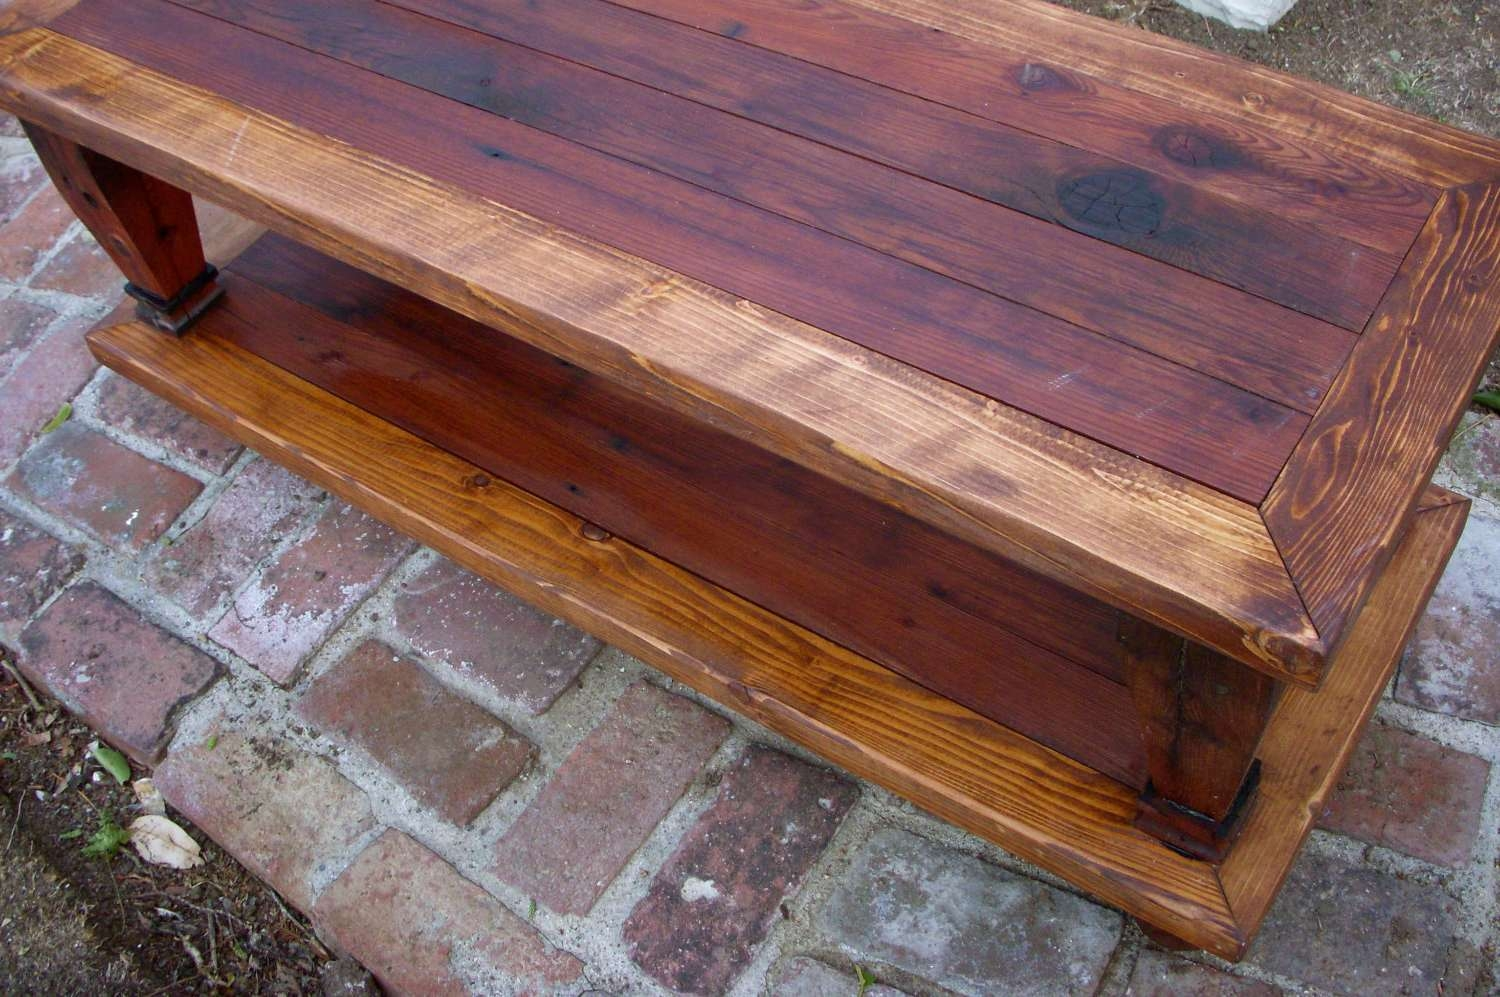 Preferred Handmade Wooden Coffee Tables Pertaining To Wood Coffee Table Handmade Furniture Living Room Shabby (View 19 of 20)